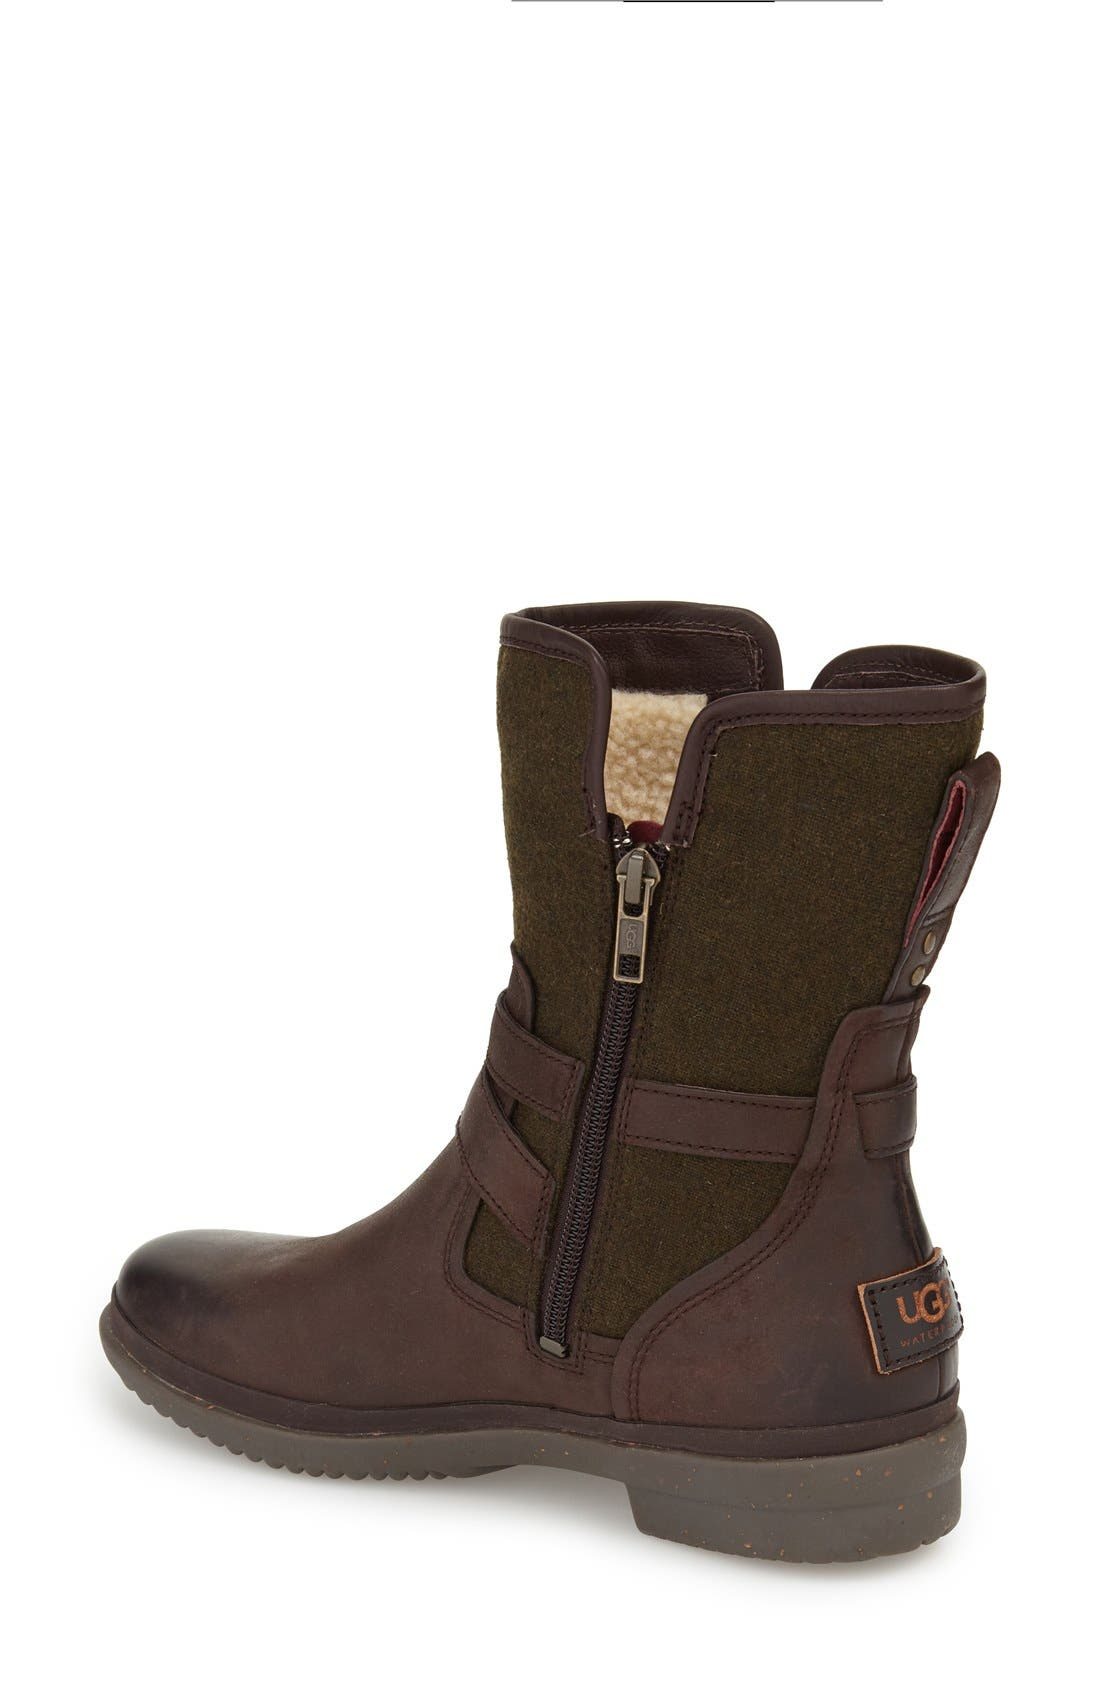 UGG<SUP>®</SUP>, Simmens Waterproof Leather Boot, Alternate thumbnail 4, color, STOUT WOOL